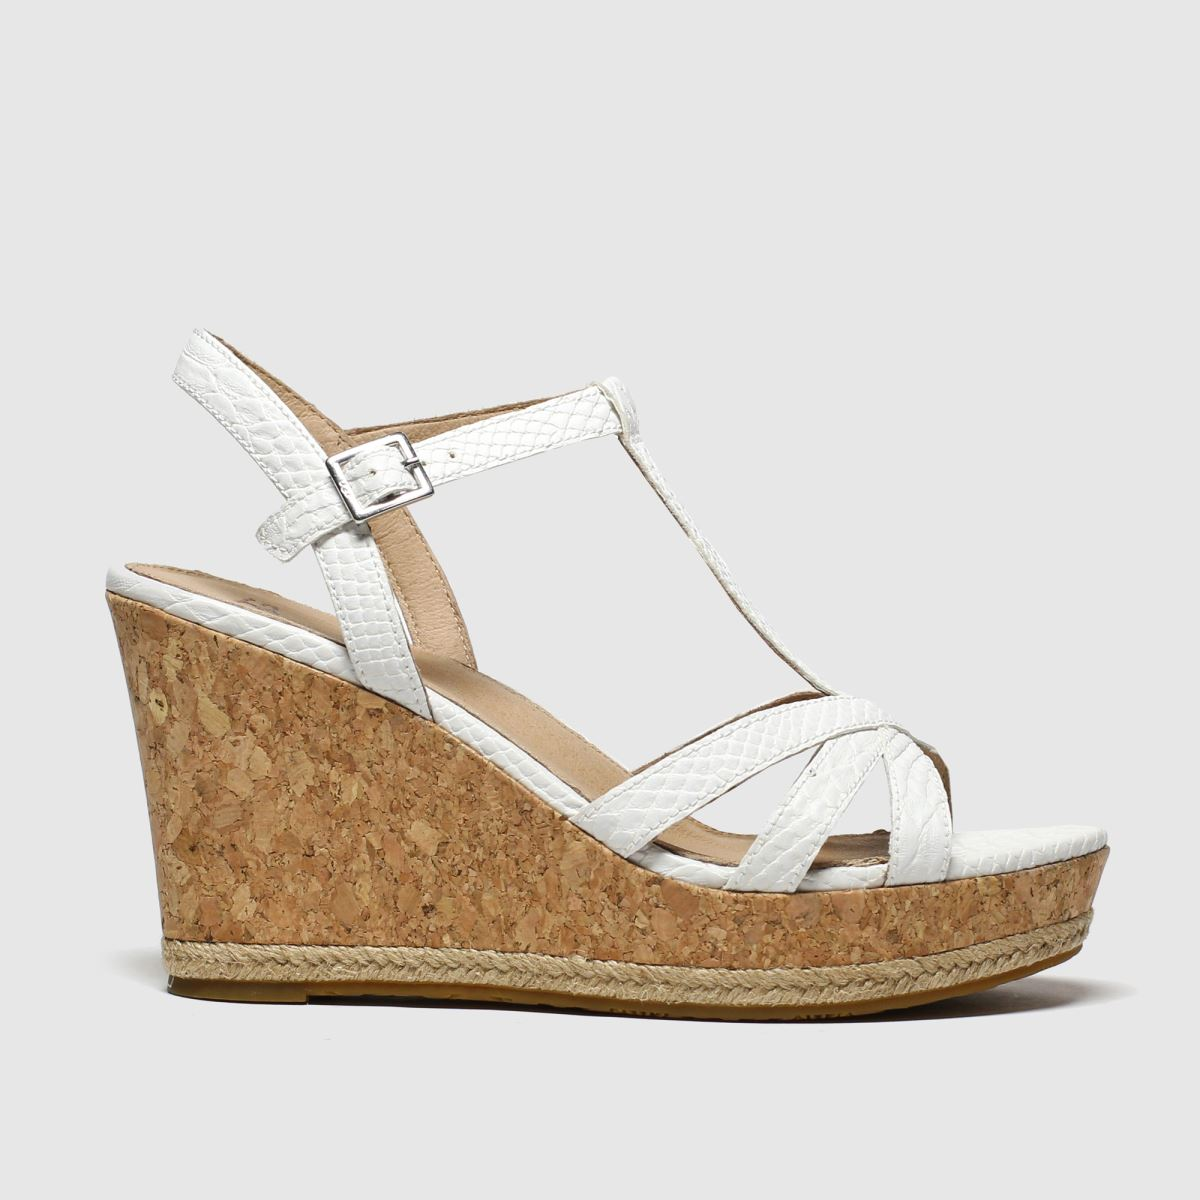 Ugg White Melissa Sandals